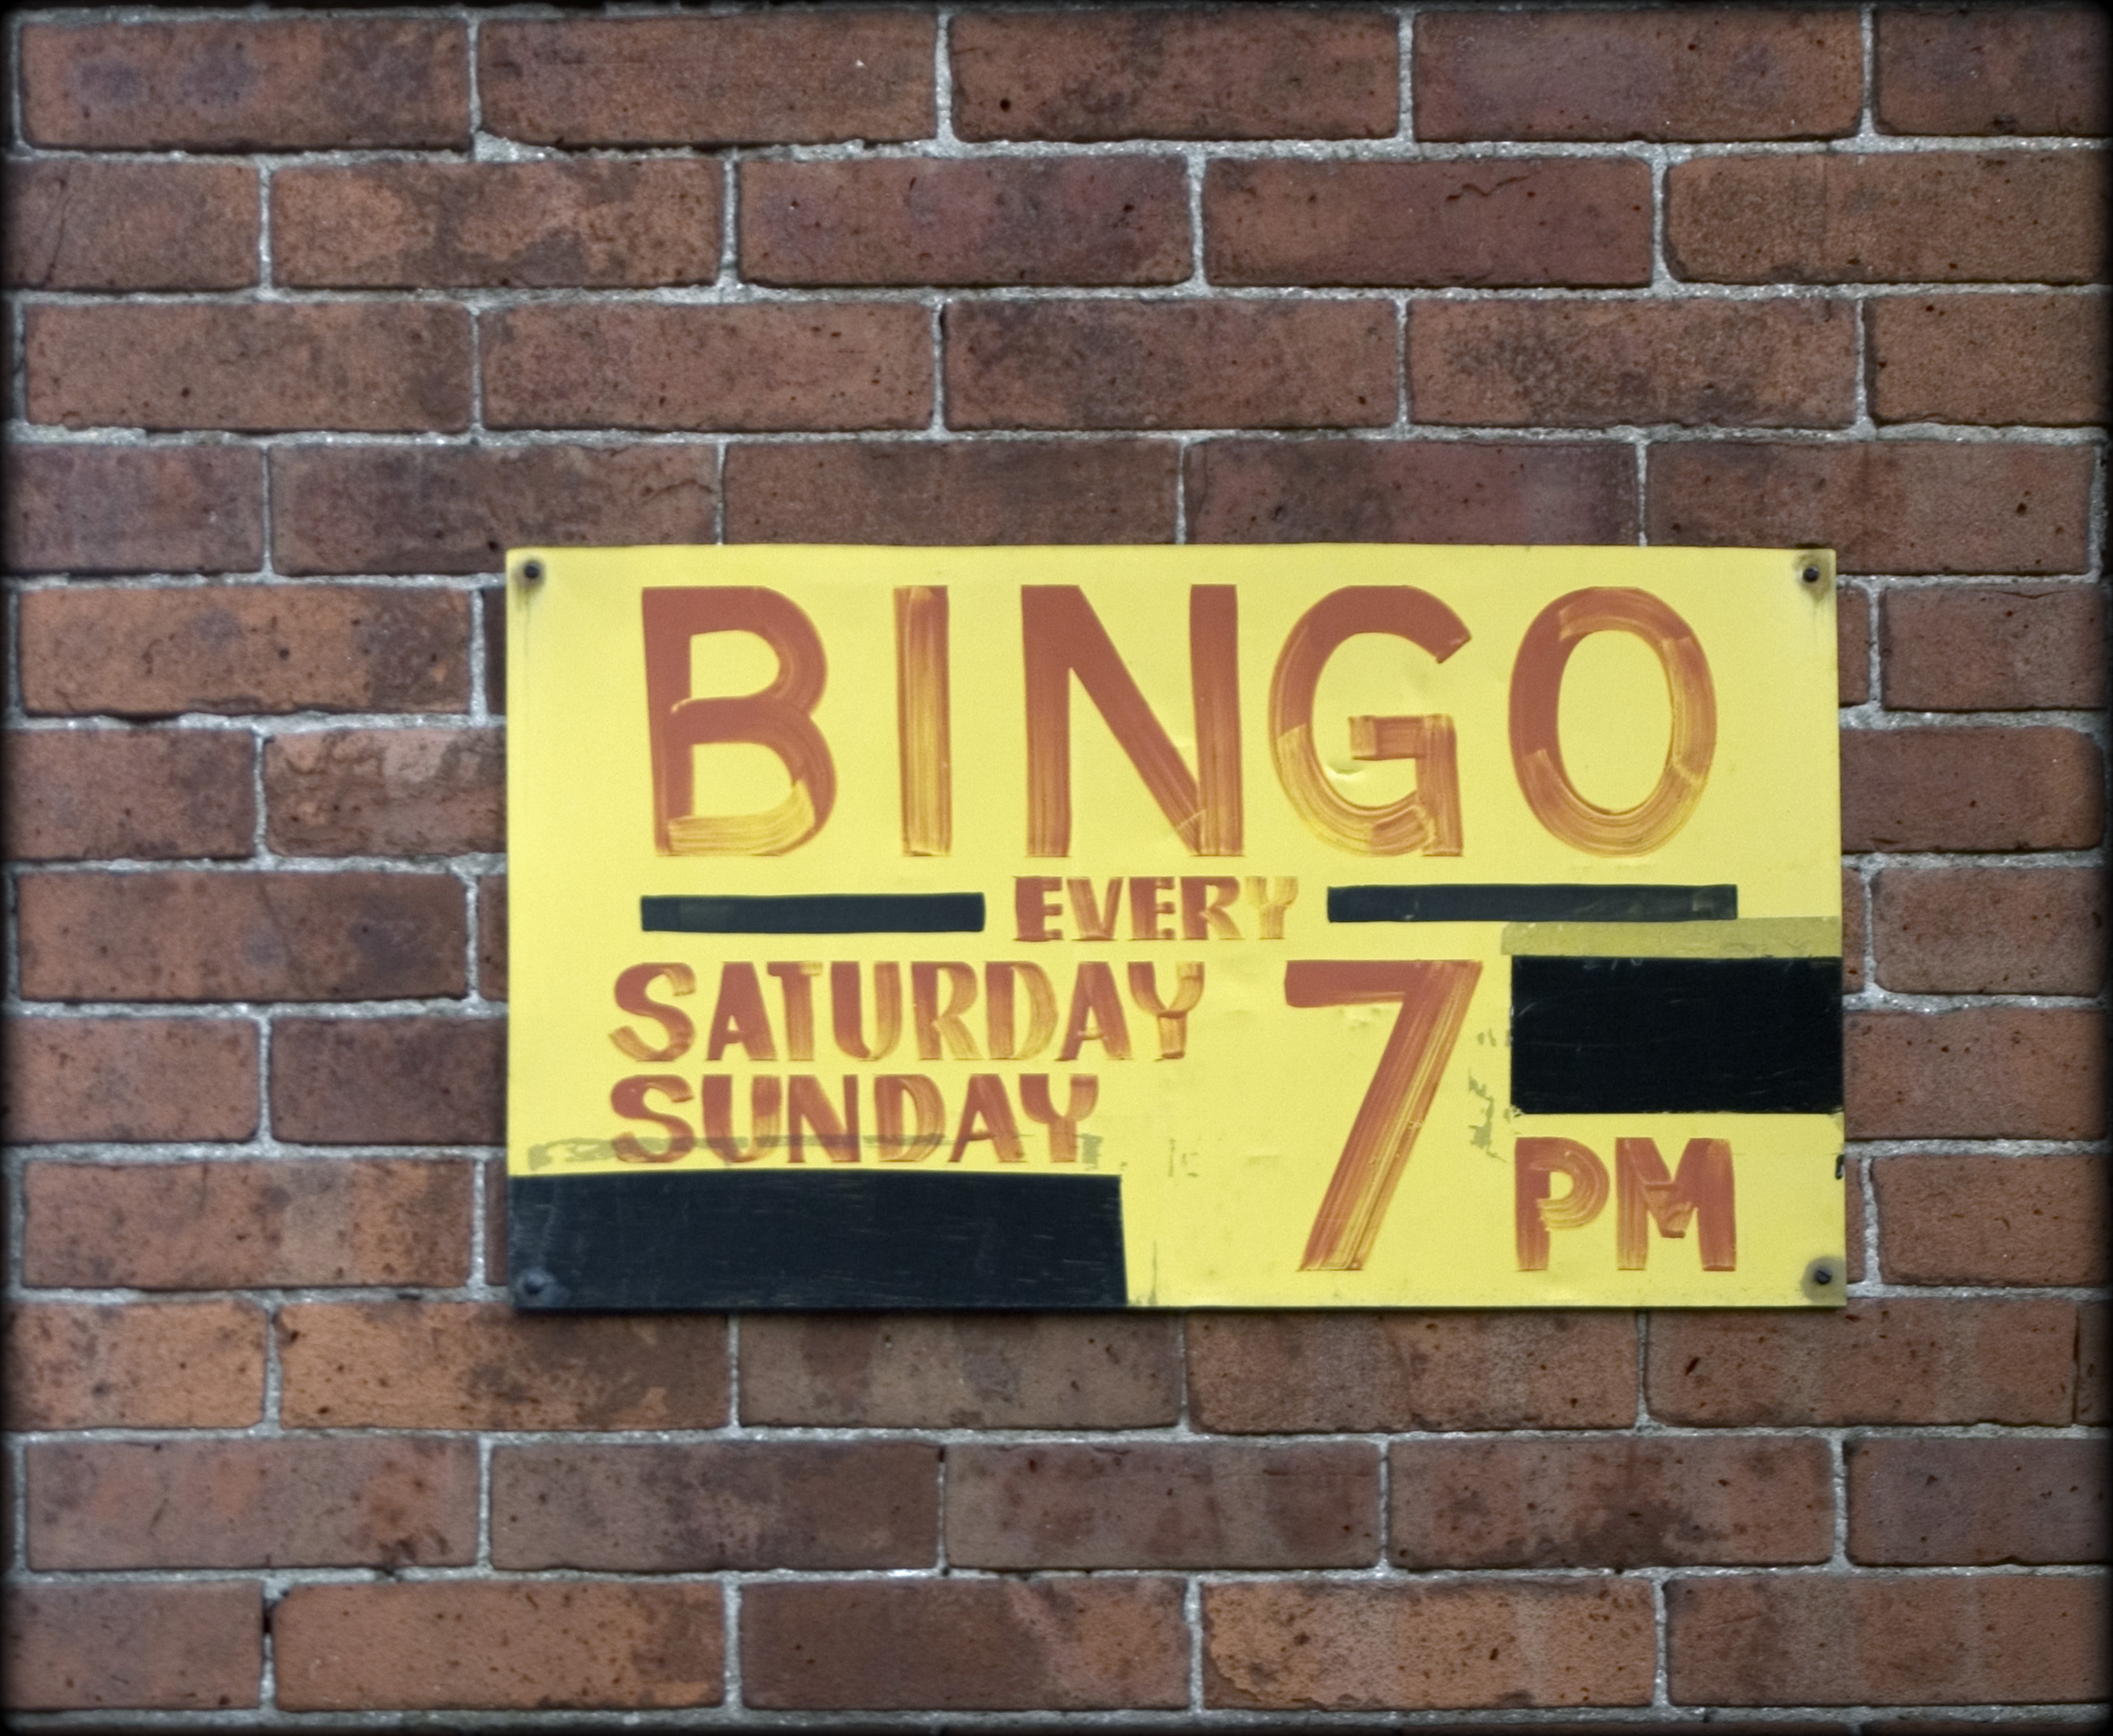 You can't litigate your way to a union: The IWW campaign at Boulevard Bingo